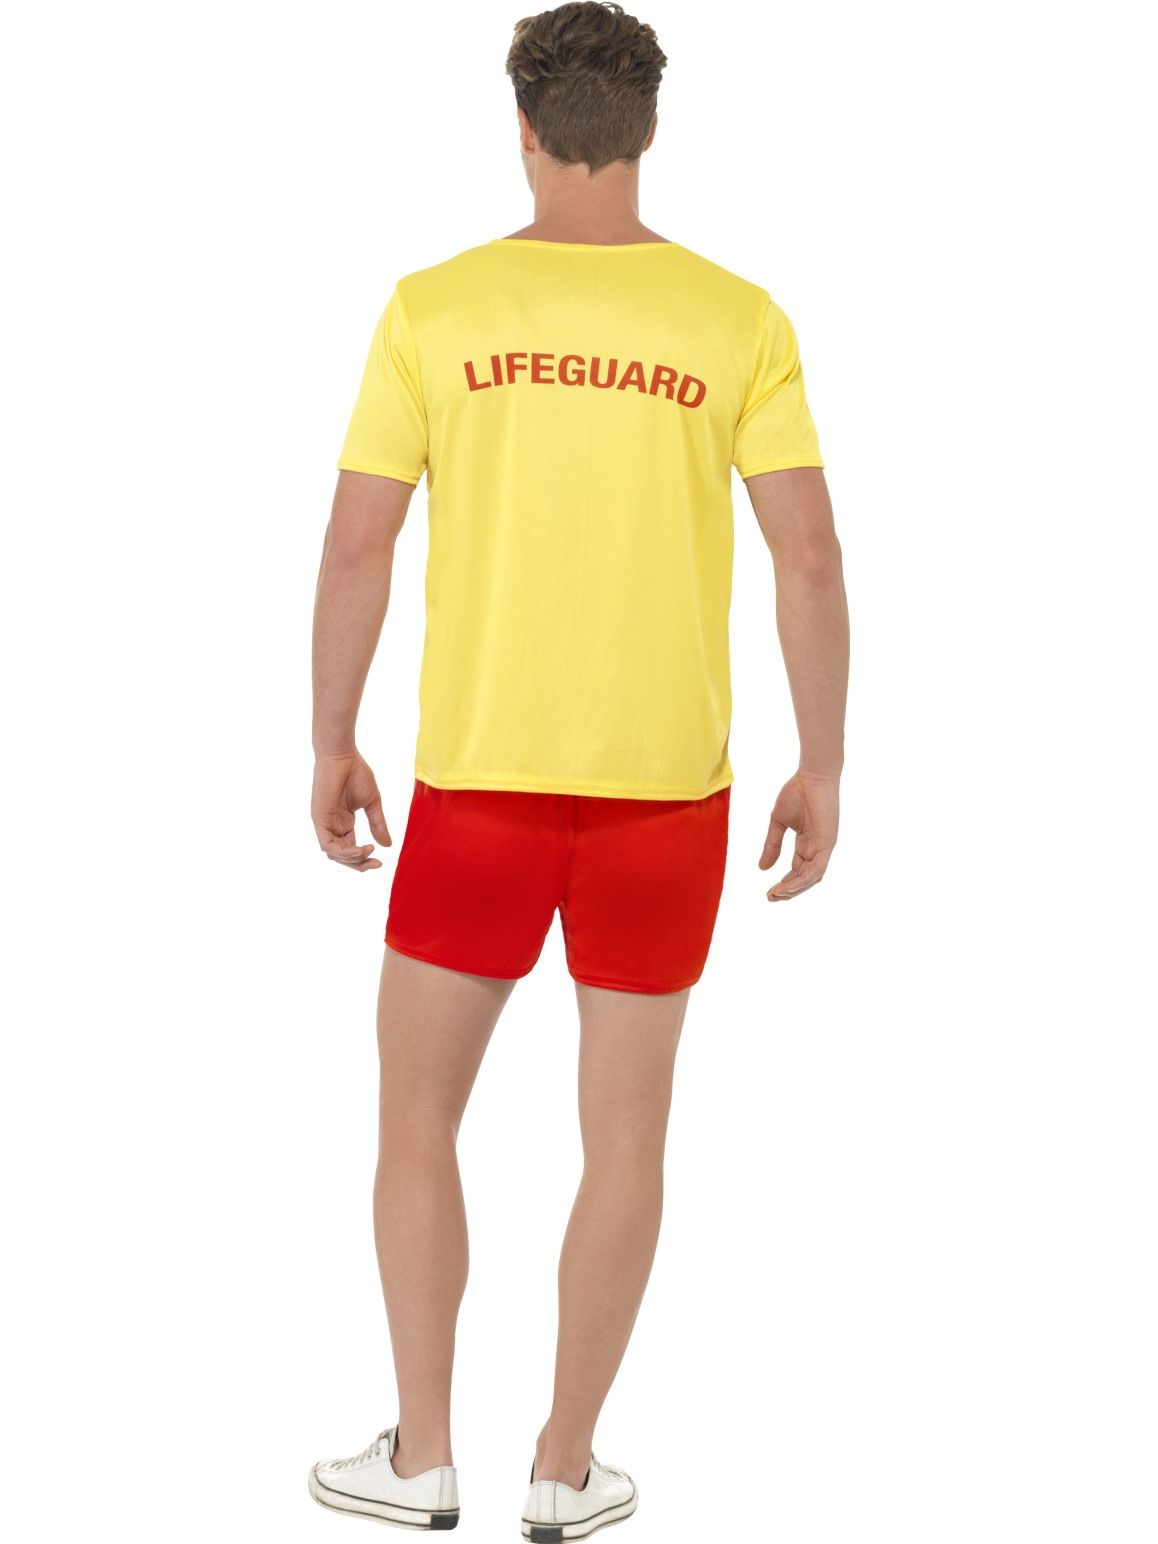 Baywatch Beach Life Guard Costume - Buy